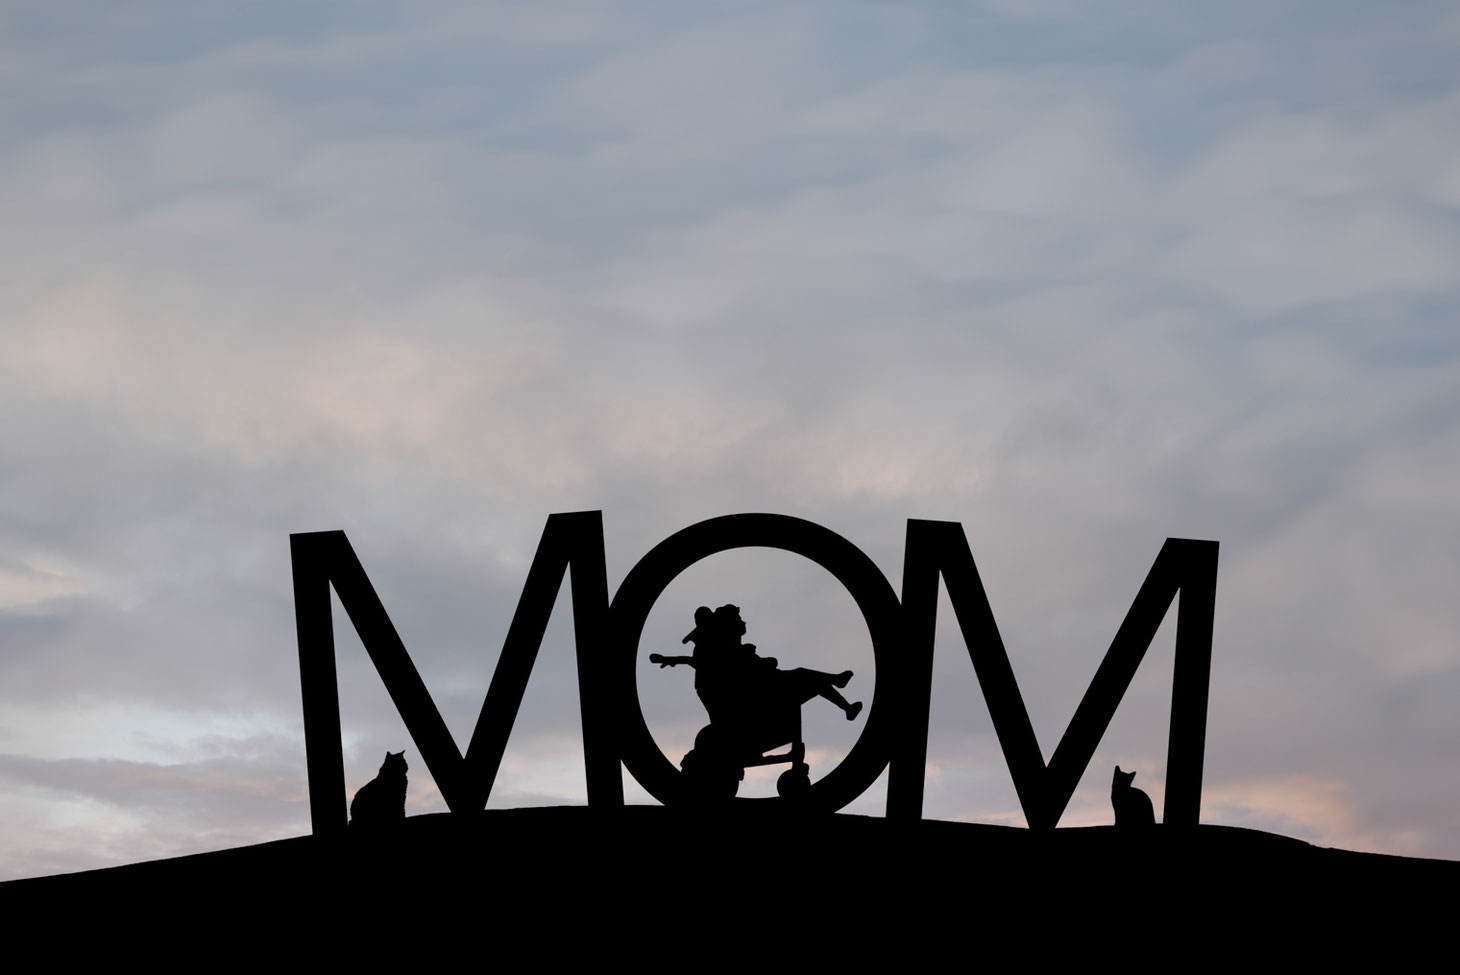 silhouettes of girl in a wheelchair and 2 cats in the letters MOM on a hill. Sky is blue, grey, and pink.